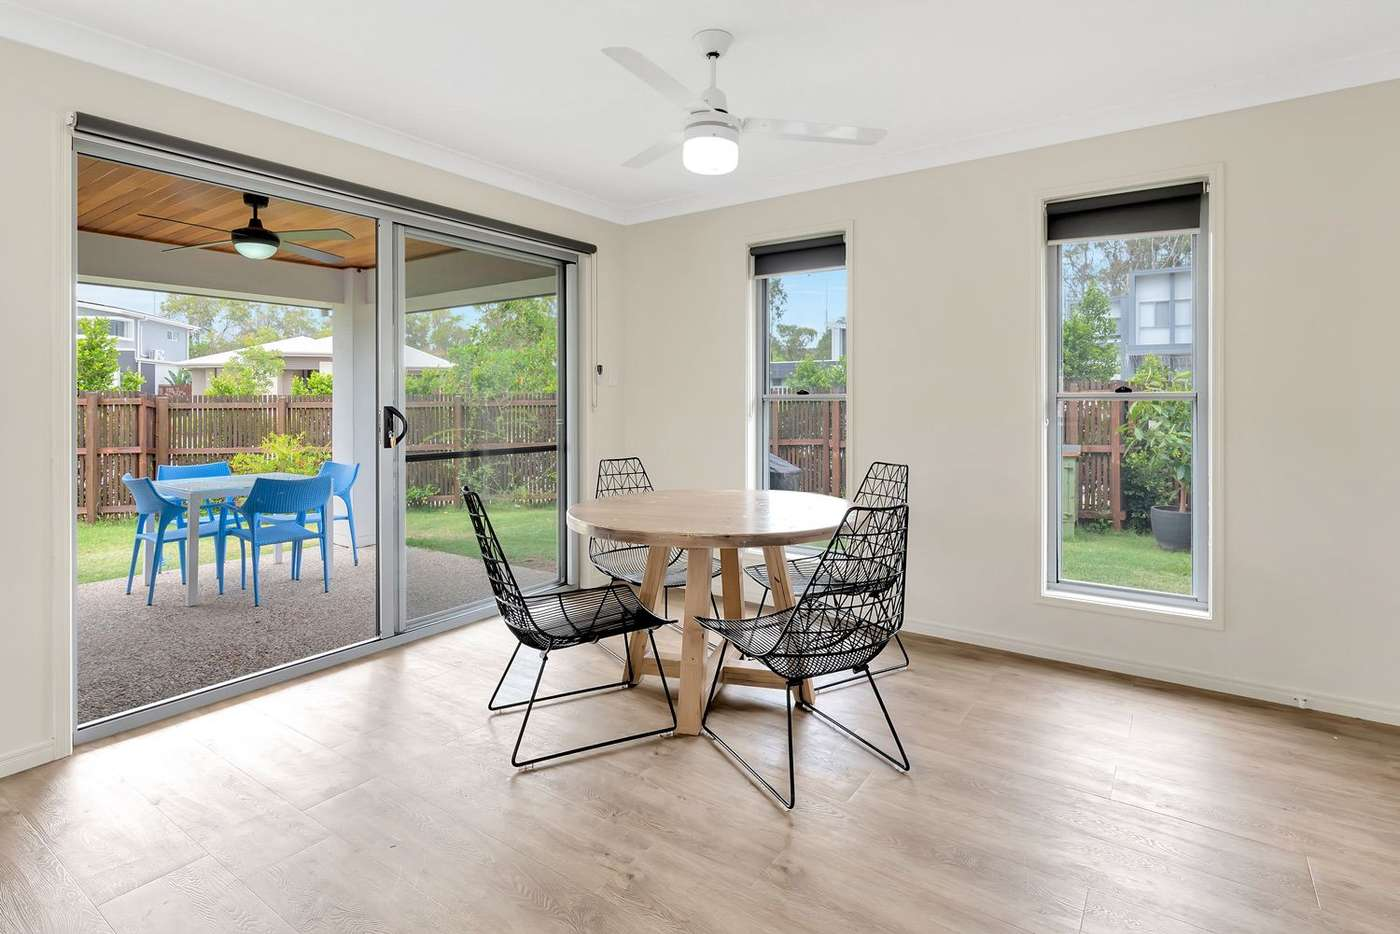 Seventh view of Homely house listing, 1 Towarri Street, Pimpama QLD 4209